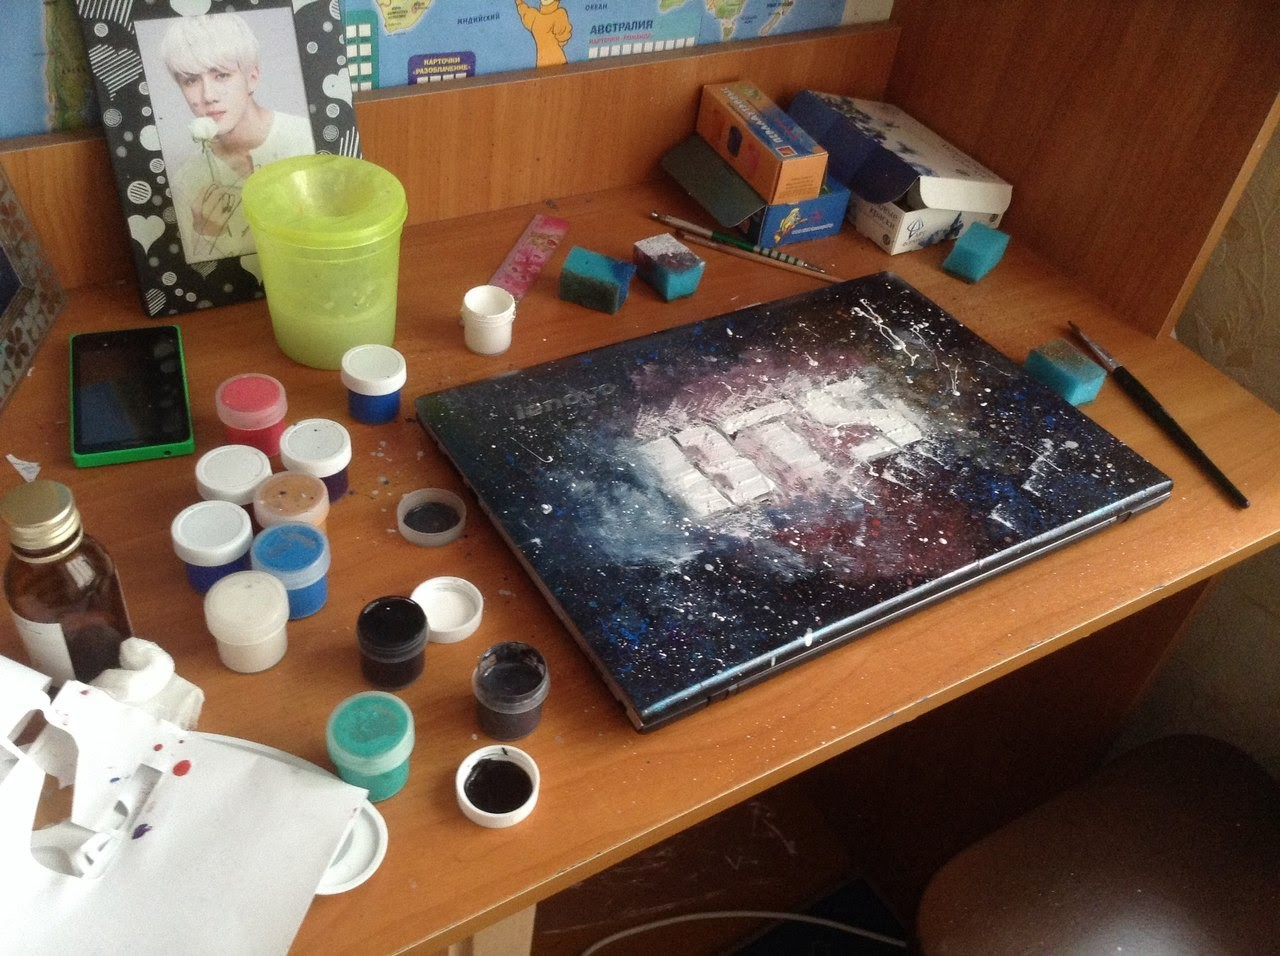 K-POP D.I.Y|DECOR LAPTOP BTS